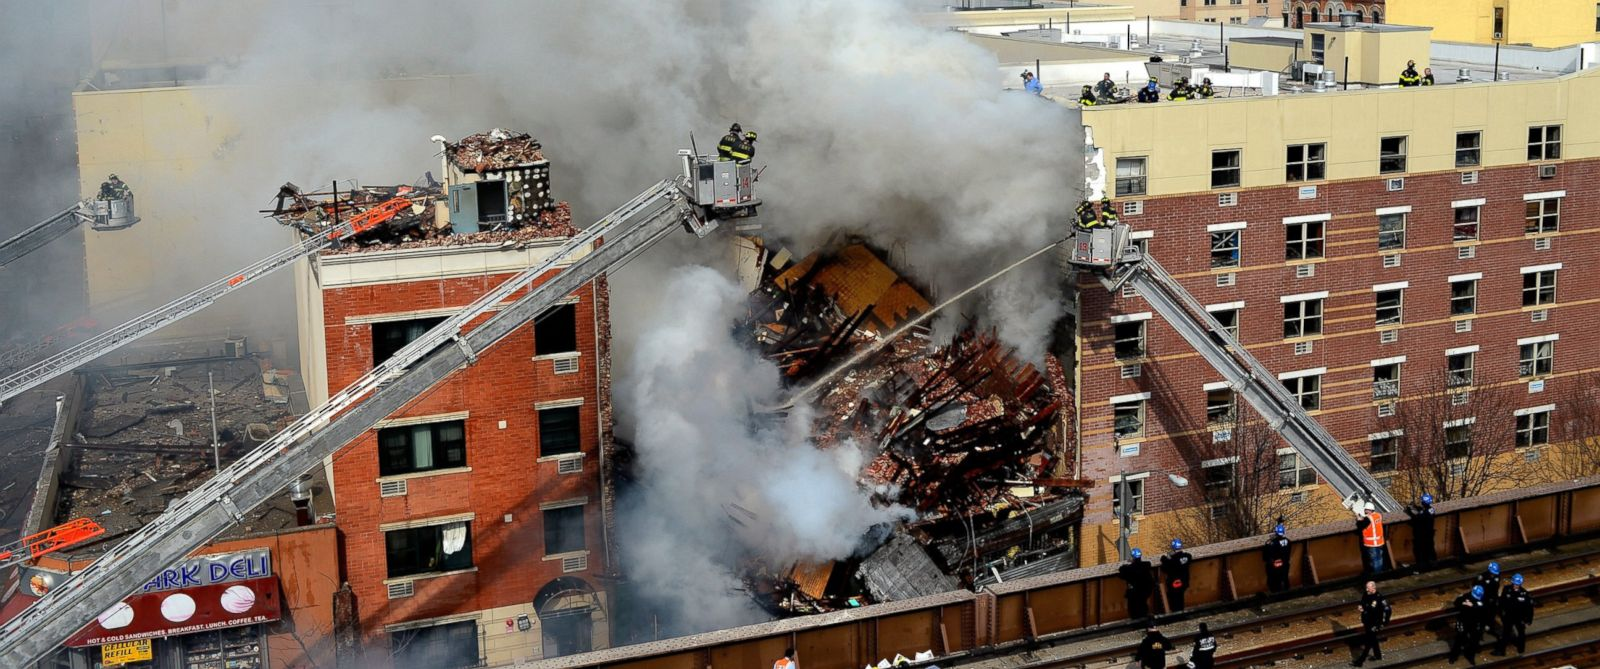 PHOTO: Firefighters from the Fire Department of New York (FDNY) respond to a five-alarm fire and building collapse.